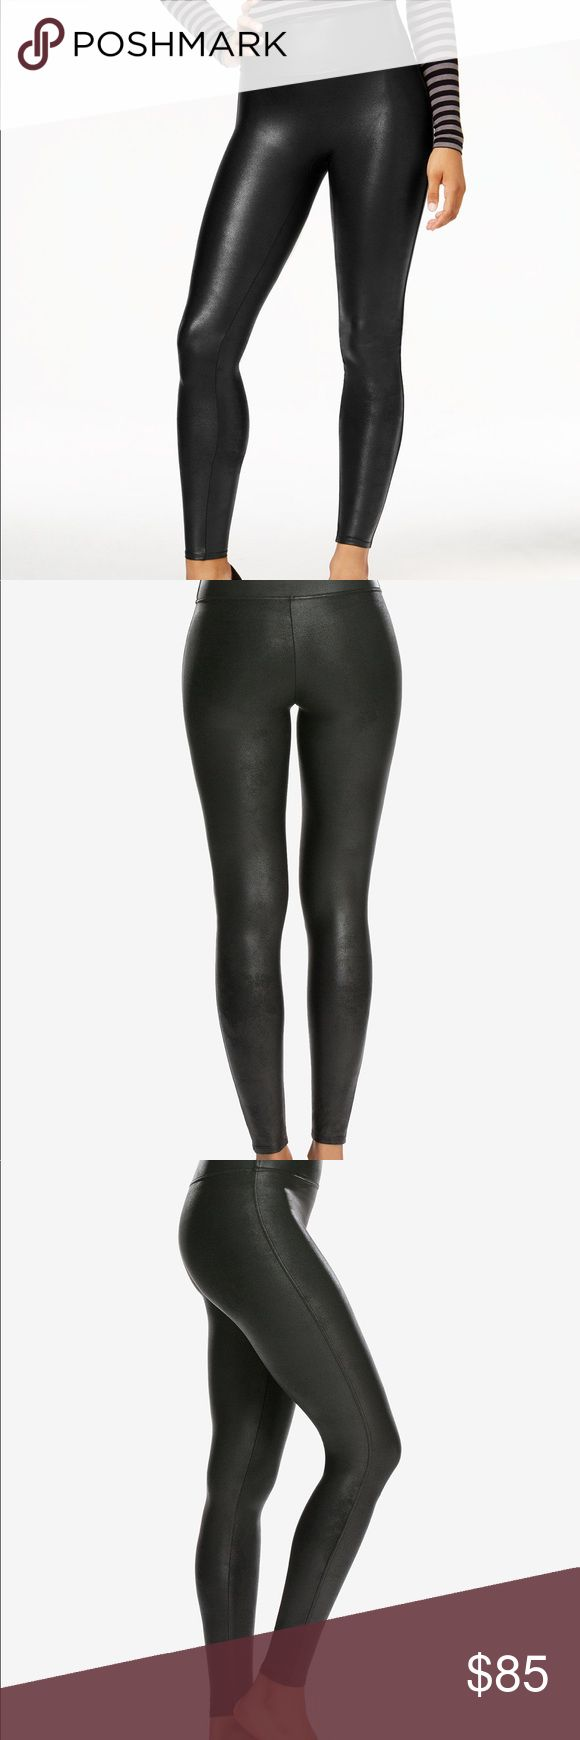 """SPANX's faux-leather fashion leggings The liquid look of SPANX's faux-leather fashion leggings are a favorite for casual days and nights out.       Approx. inseam: 29""""     Pull-on style     The slim's built in— shaping waistband with hidden power mesh     Wear these fashion forward pants with anything—easy to dress up or down     A more structured fit and pant-like feel     XS (0-2), S (2-4), M (6-8), L (10 -12), XL (14-16), 1X (18-20), 2X (20-22), 3X (-24)     Nylon/spandex; waist lining…"""